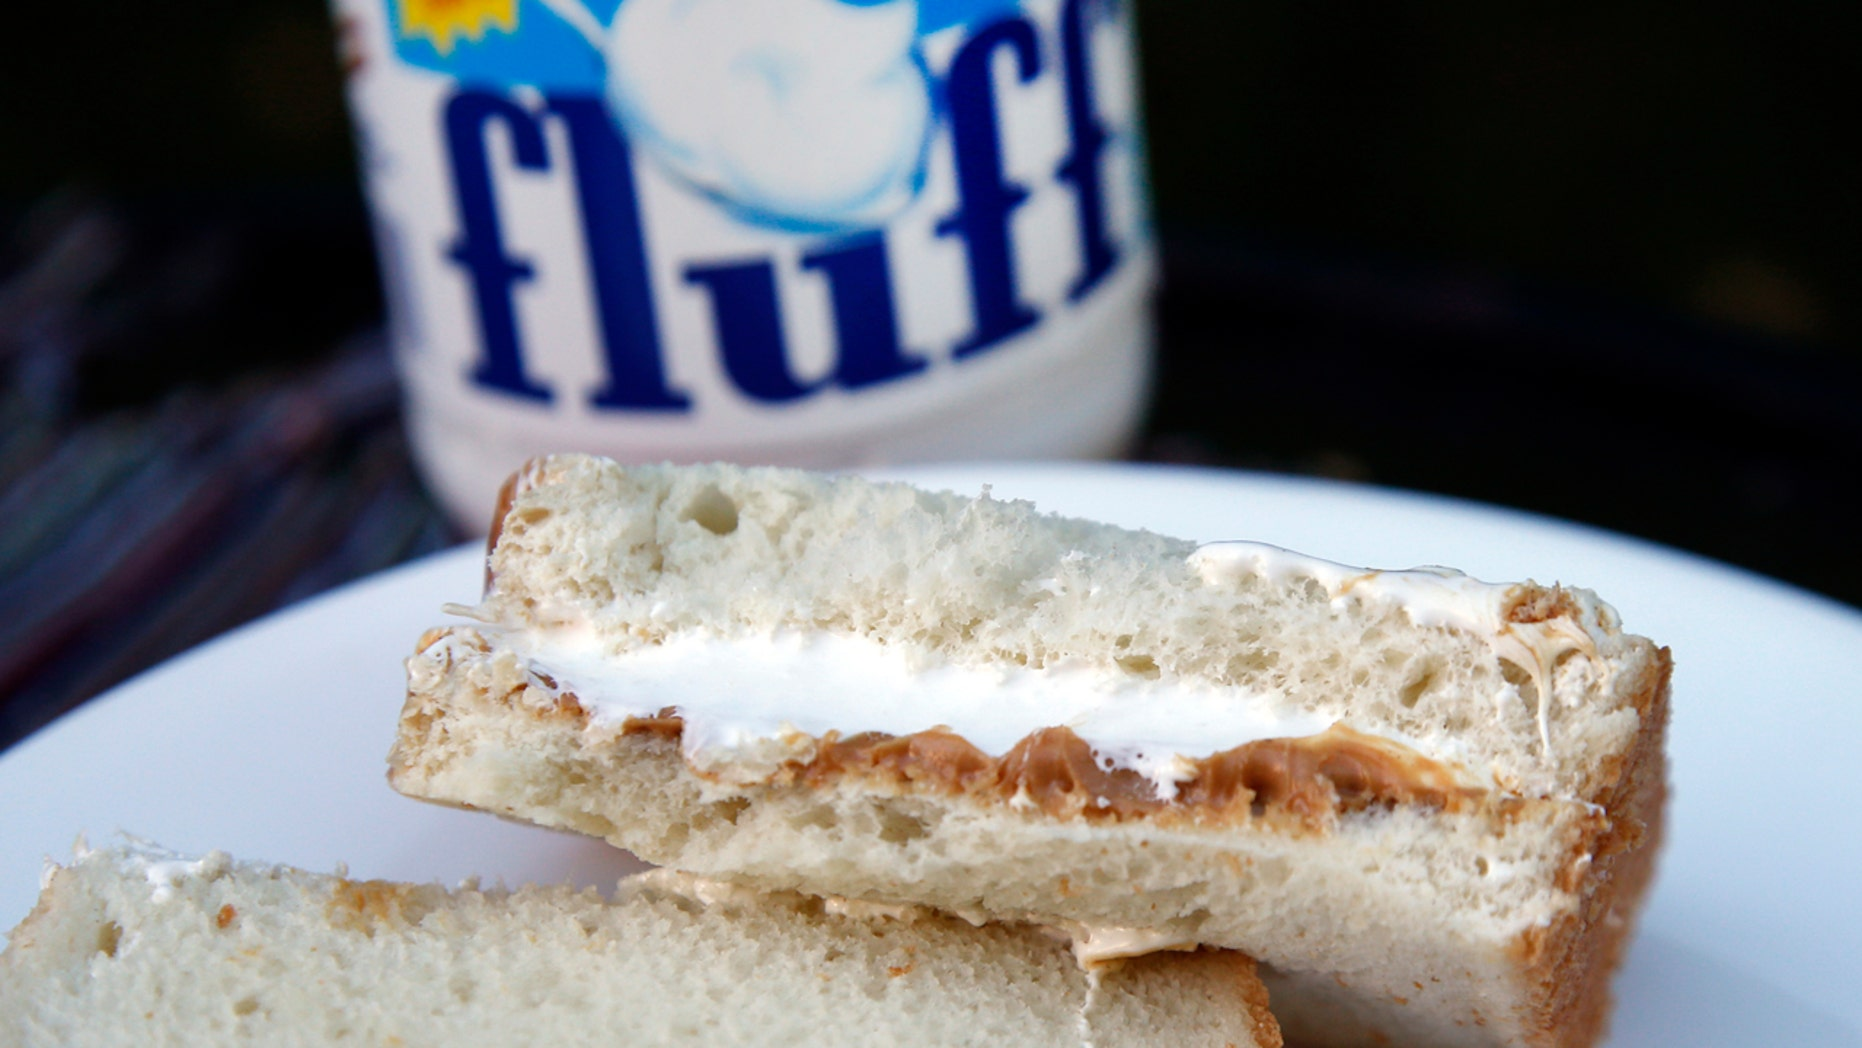 In this Sept. 27, 2013, file photo, a jar of Marshmallow Fluff and a Fluffernutter sandwich are displayed in North Andover, Mass. Archibald Query invented Fluff in 1917 in the Boston suburb of Somerville. The marshmallow concoction that's been smeared on a century's worth of sandwiches has inspired a festival and other sticky remembrances as it turns 100 in 2017. (AP Photo/Elise Amendola, File)